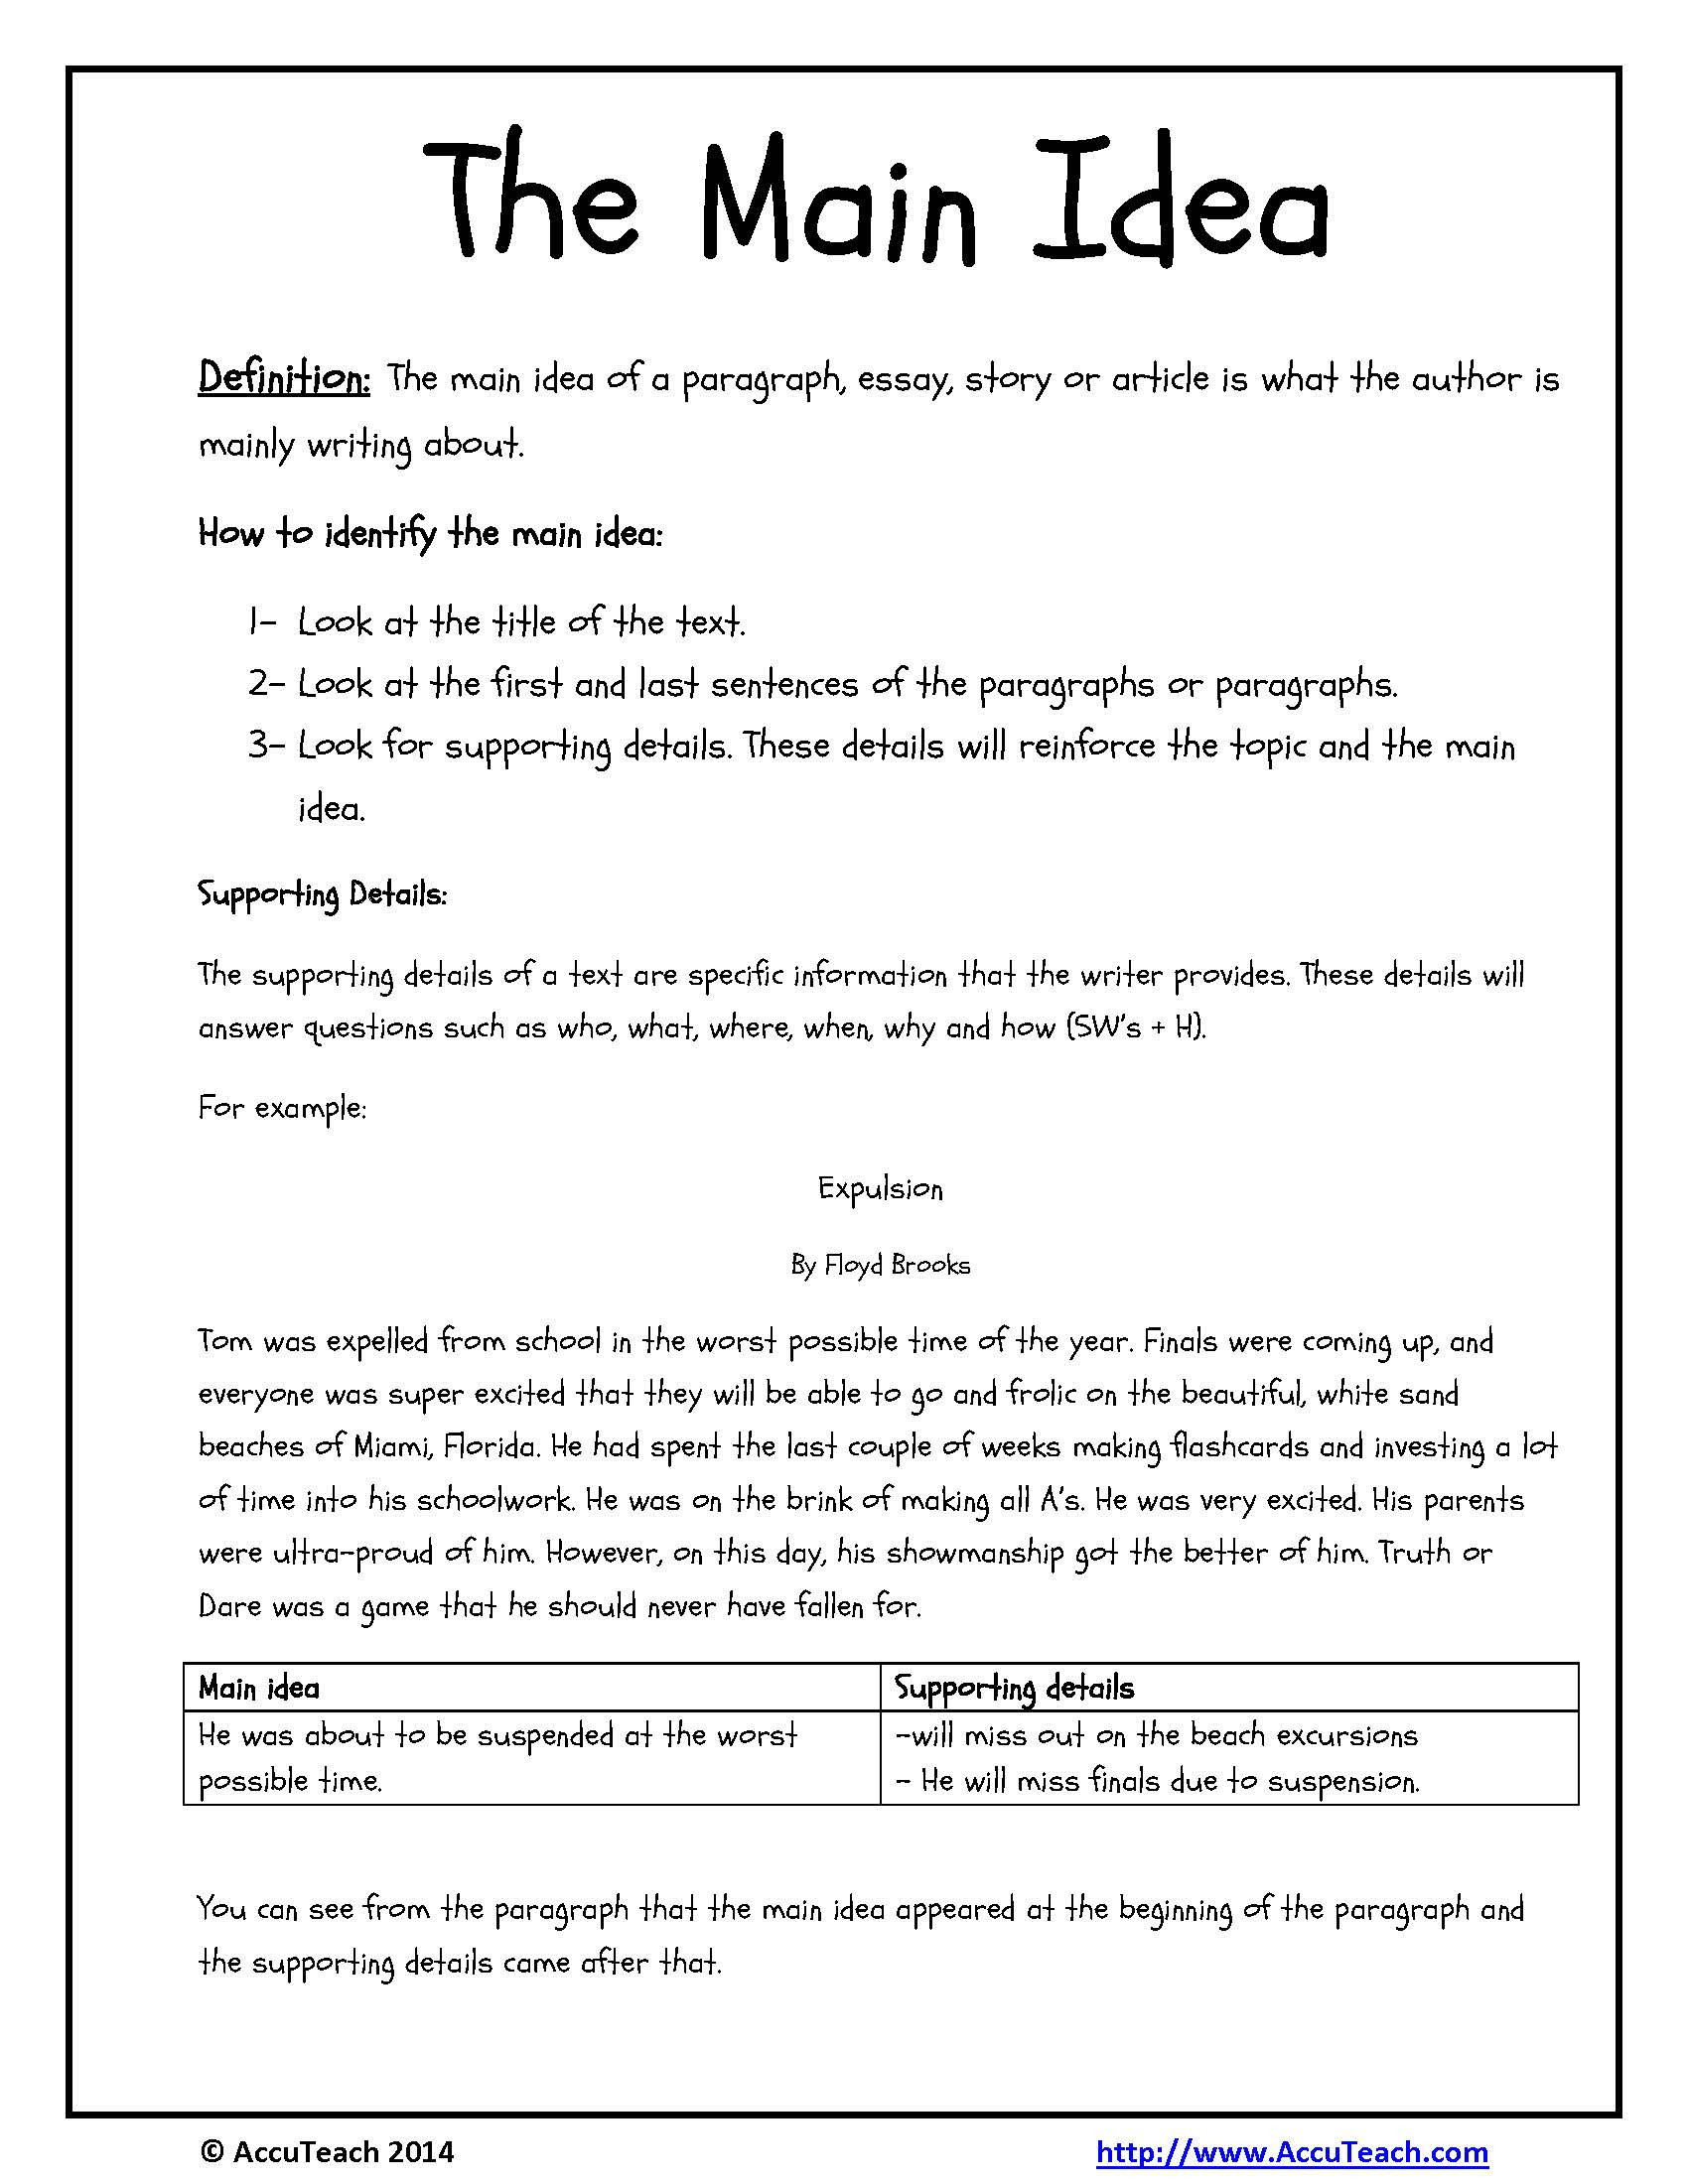 5th Grade Main Idea Worksheet Find the Main Idea Worksheet